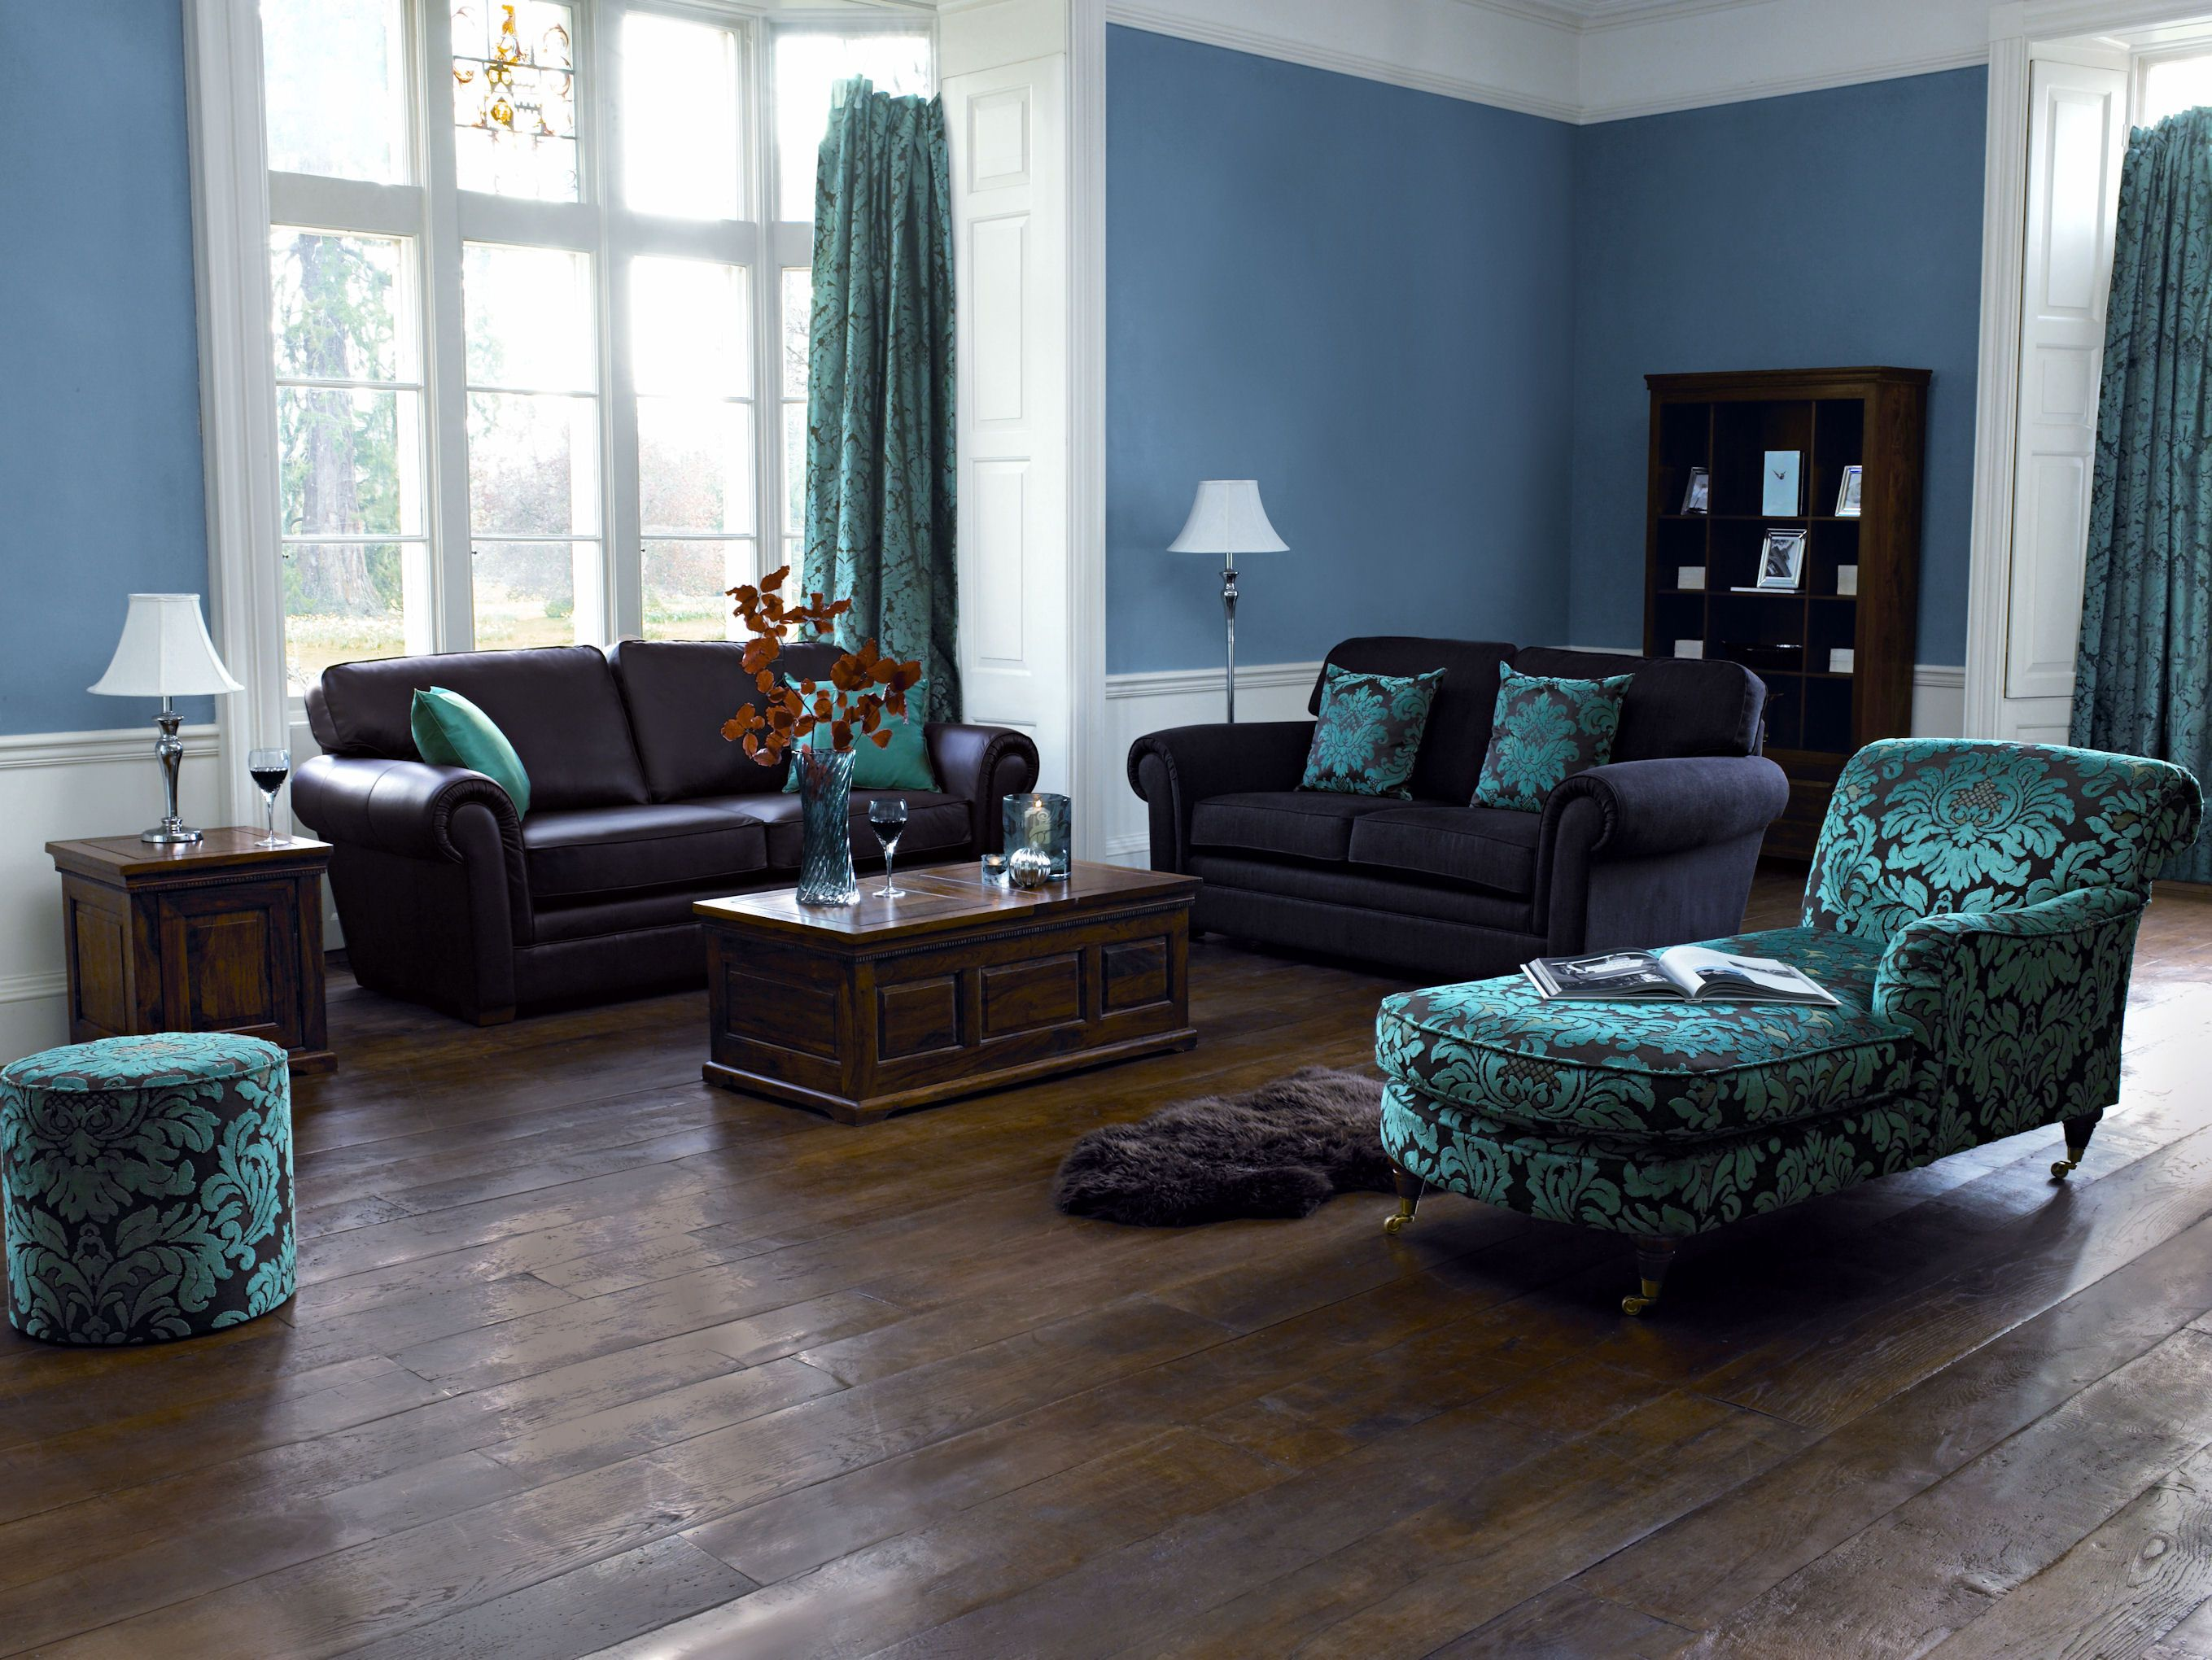 Blue paint color ideas for living room with dark furniture and dark hardwood floors1